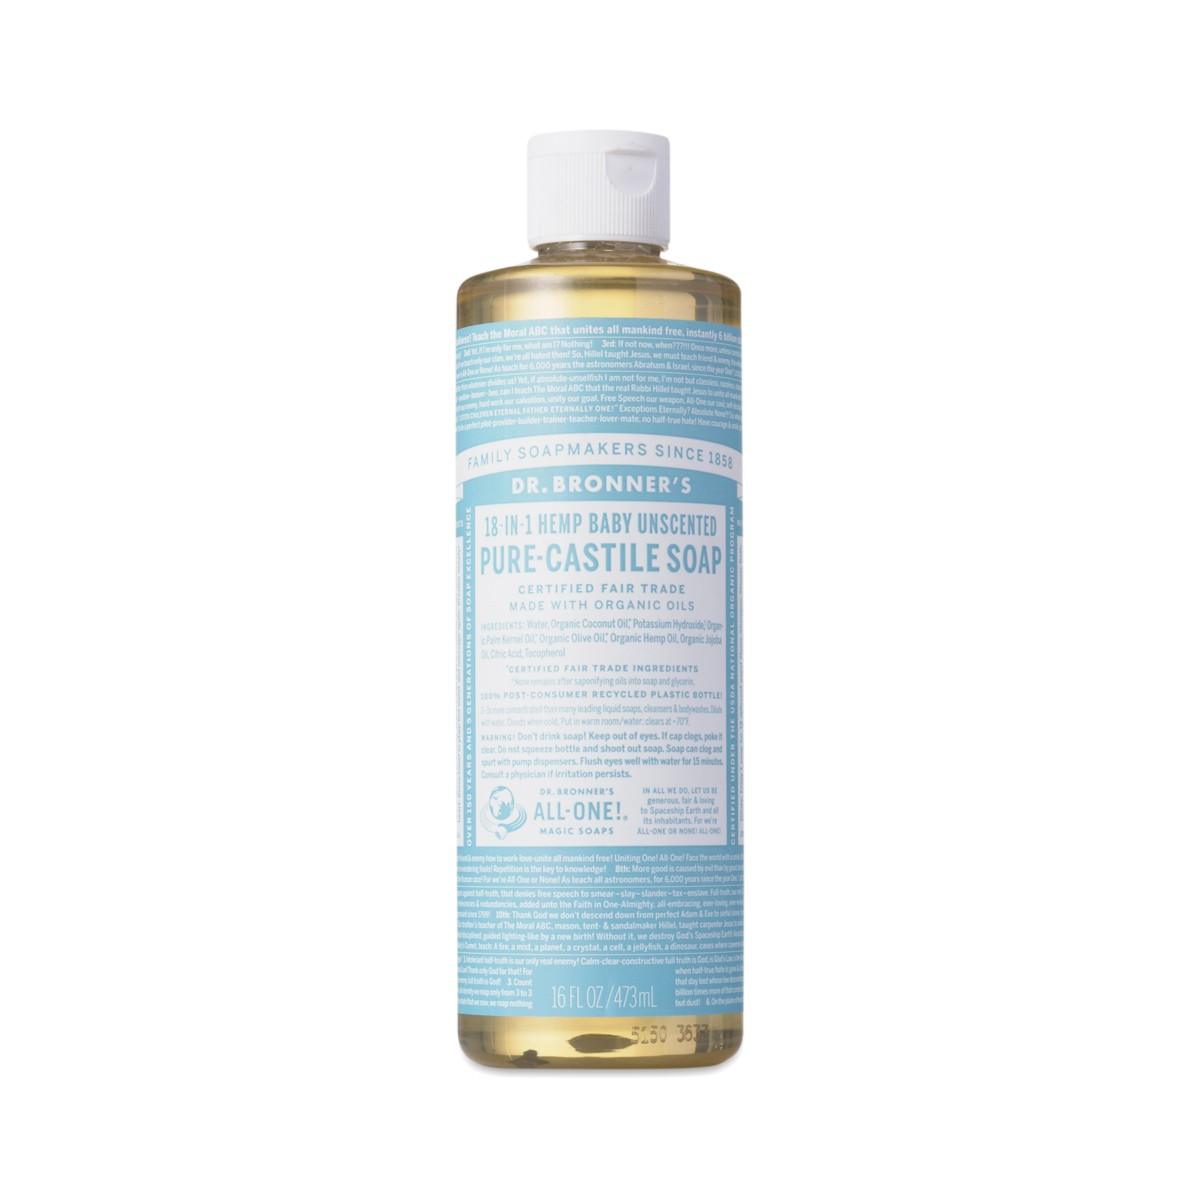 Unscented Baby Castile Liquid Soap By Dr Bronner S